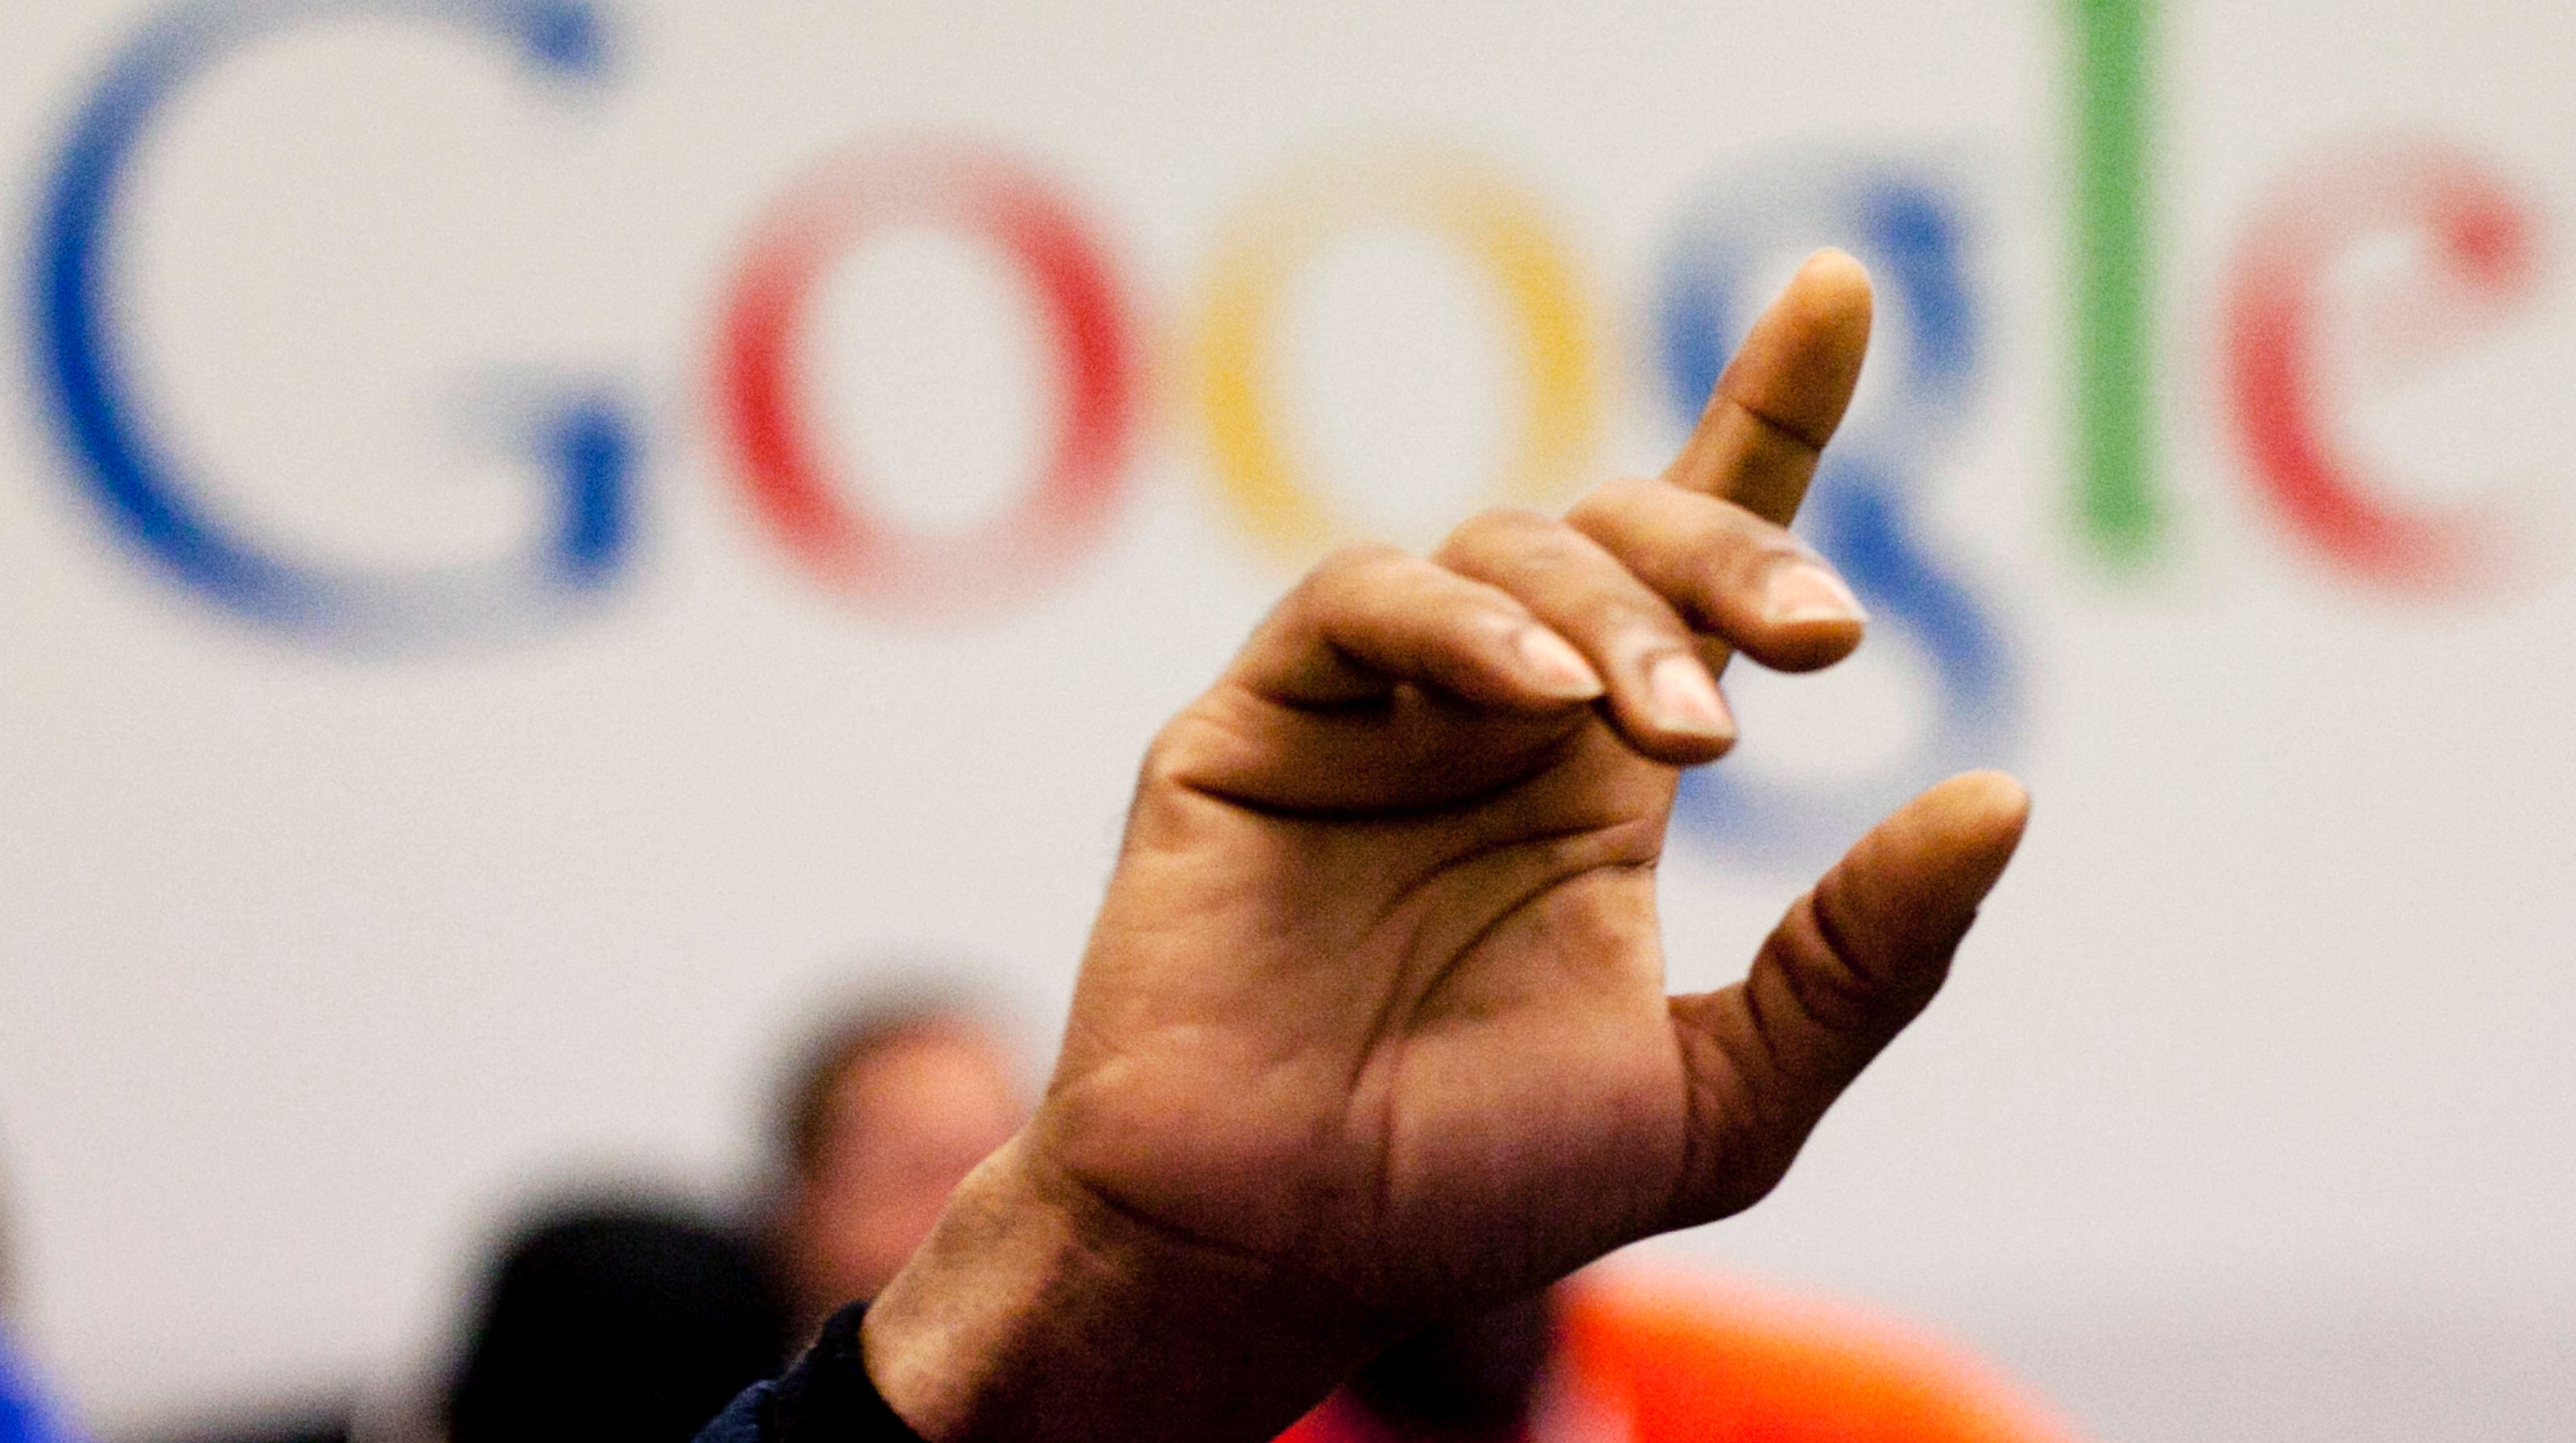 Not just conservatives: Google and Big Tech can shift millions of votes in any direction